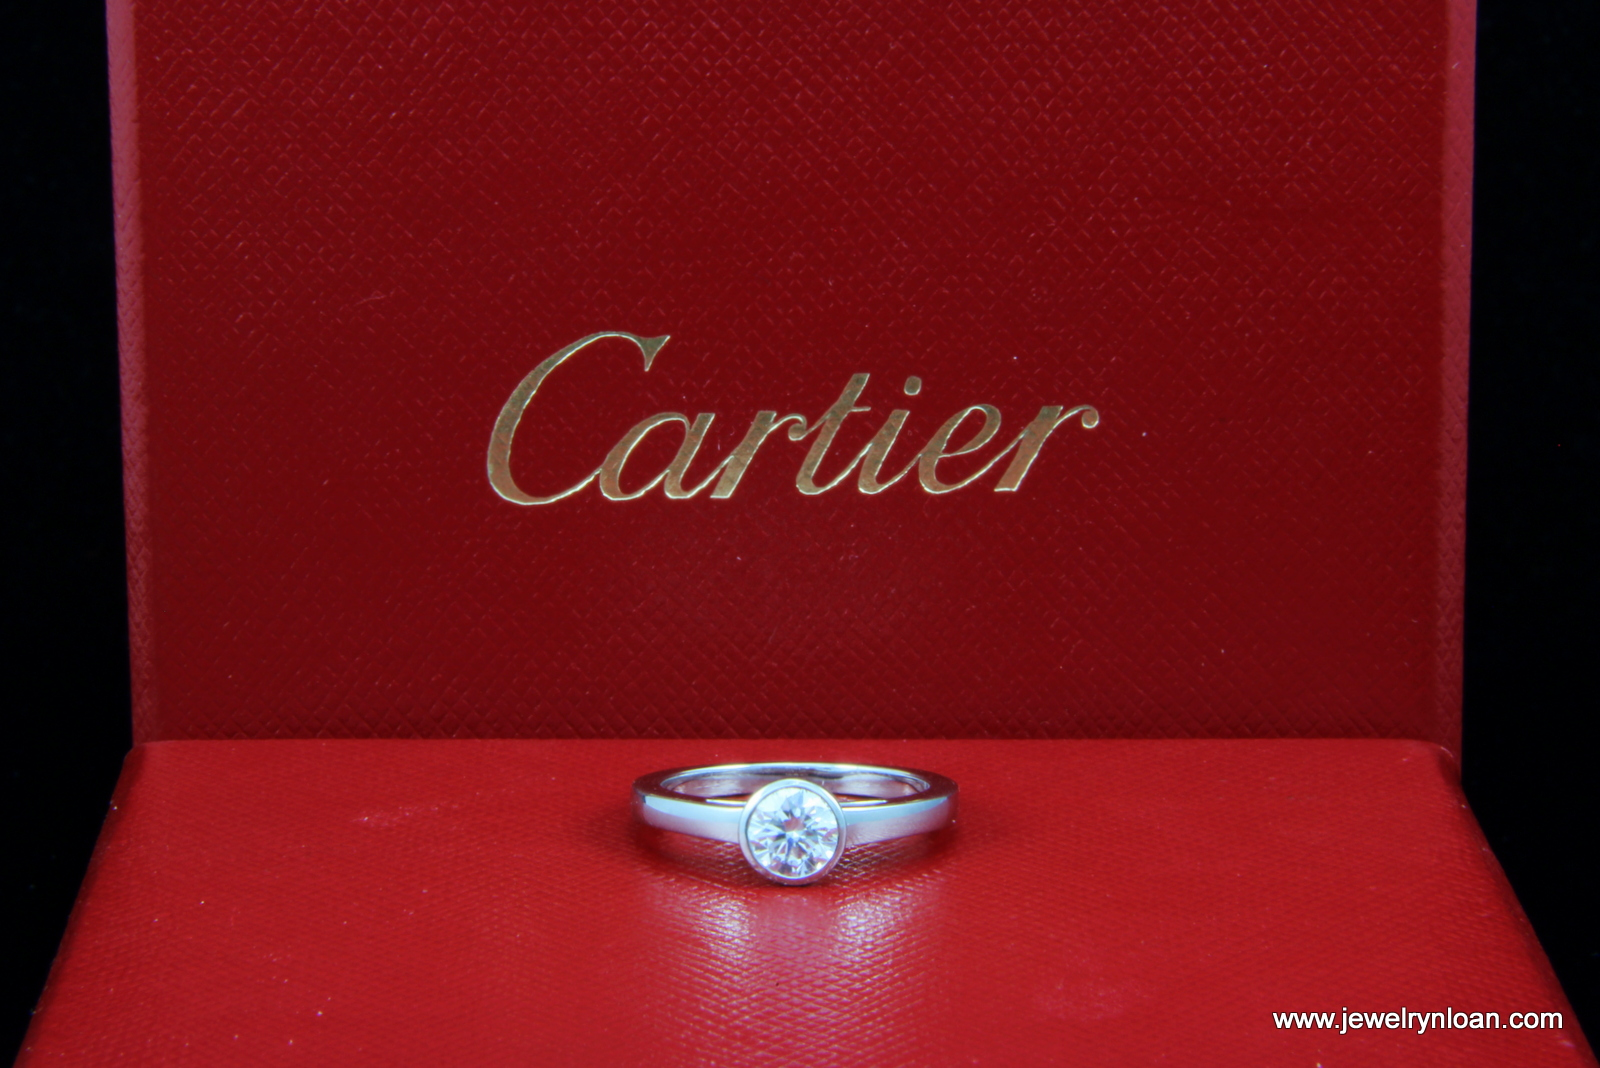 Cartier Engagement Ring Orange County